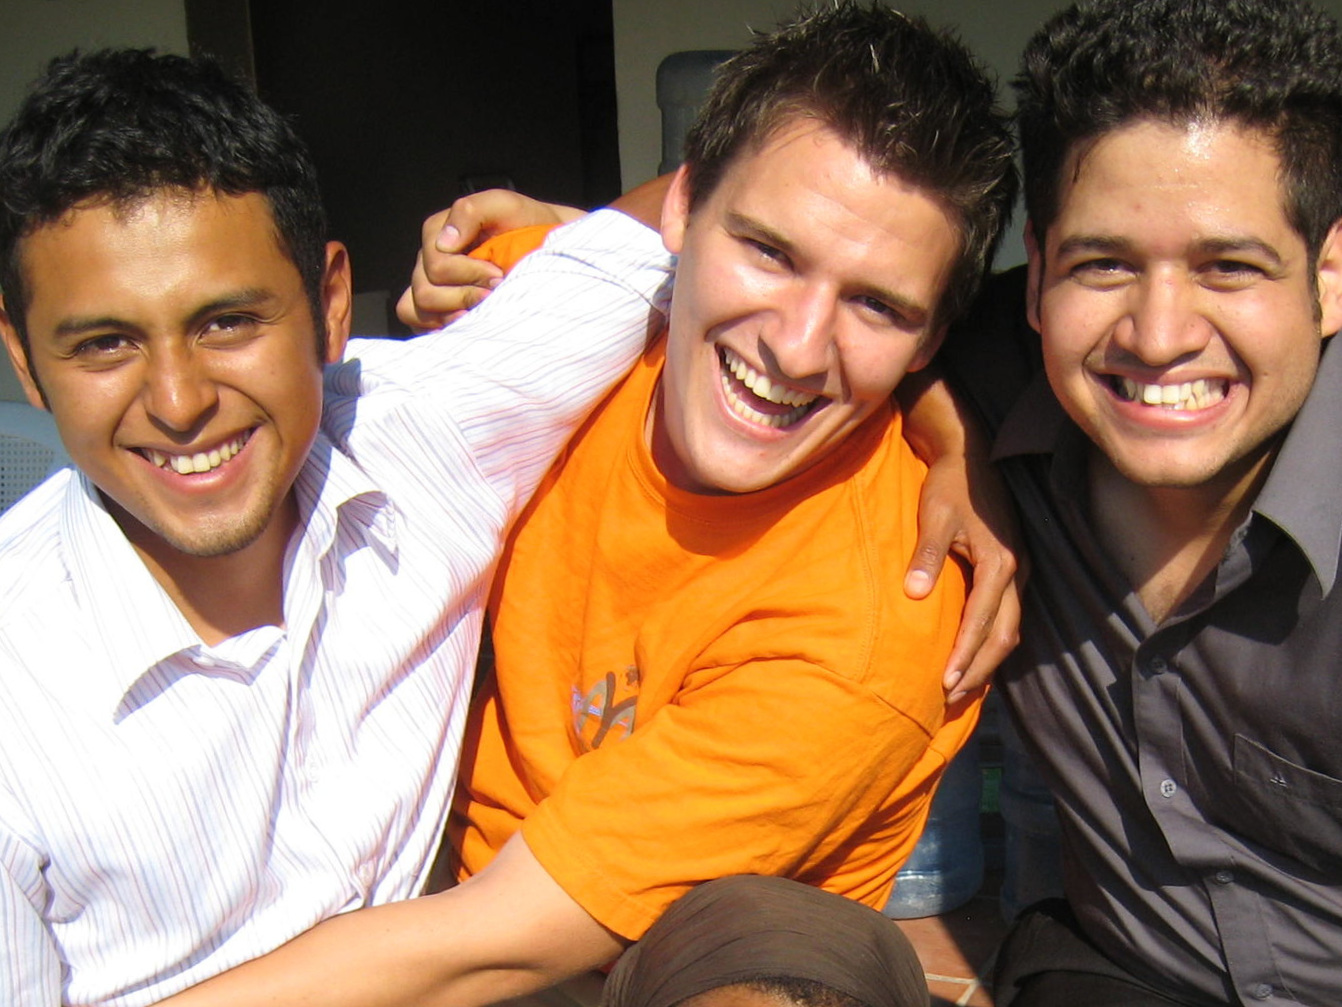 ....   Vlnr: Drei Pioniere von VIDA - Eli, Jesse und José   ..   Left to right: Three pioneers of VIDA - Eli, Jesse and Jose   ....